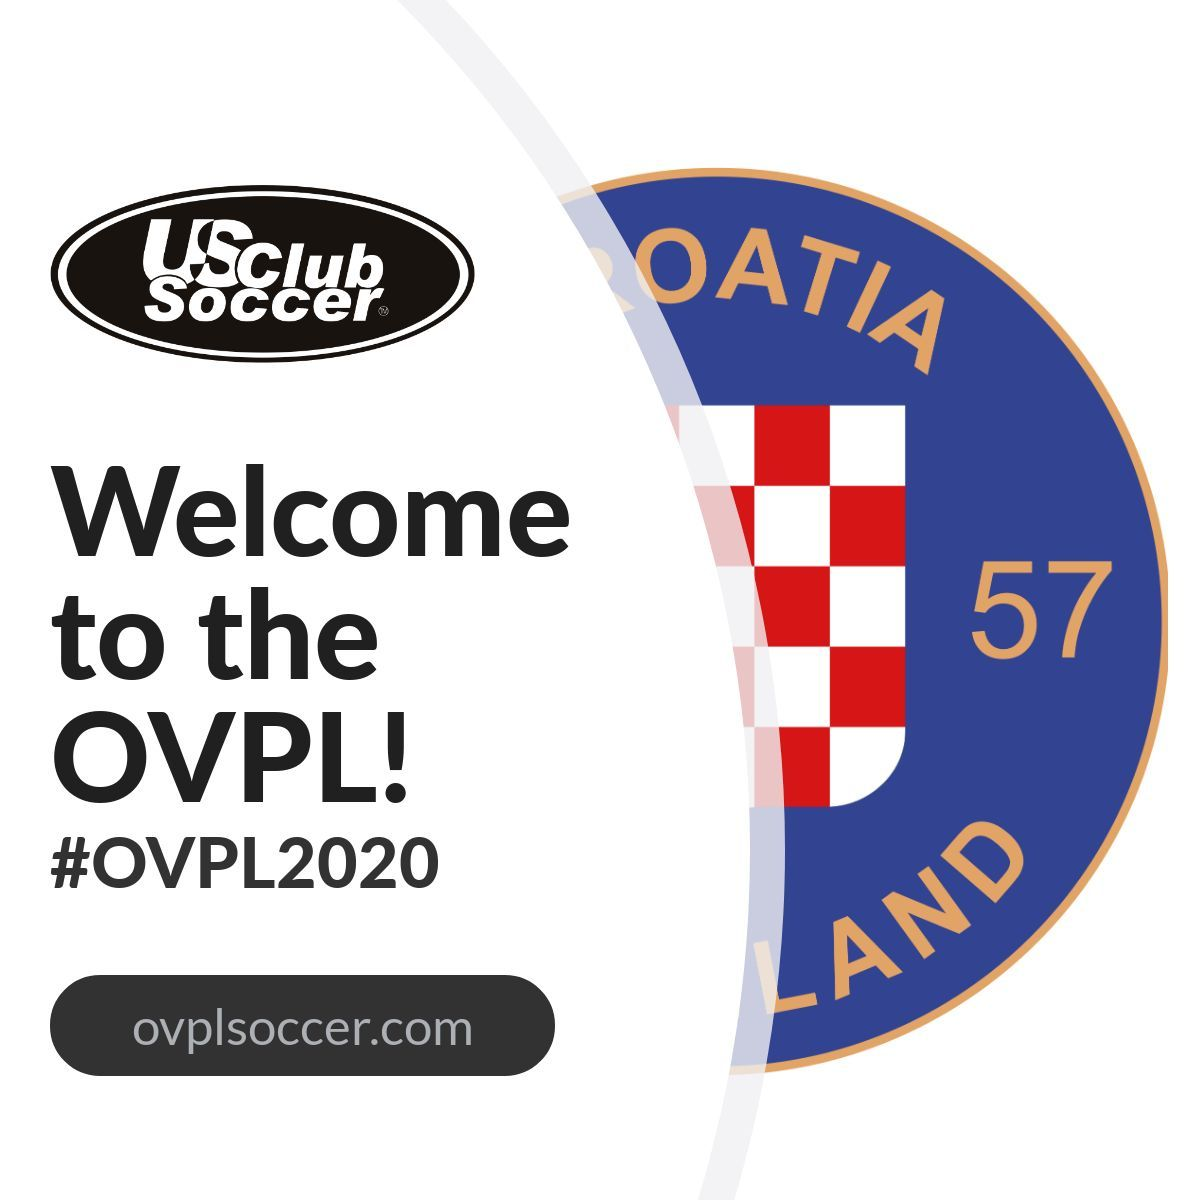 Historic Croatia Juniors joins OVPL